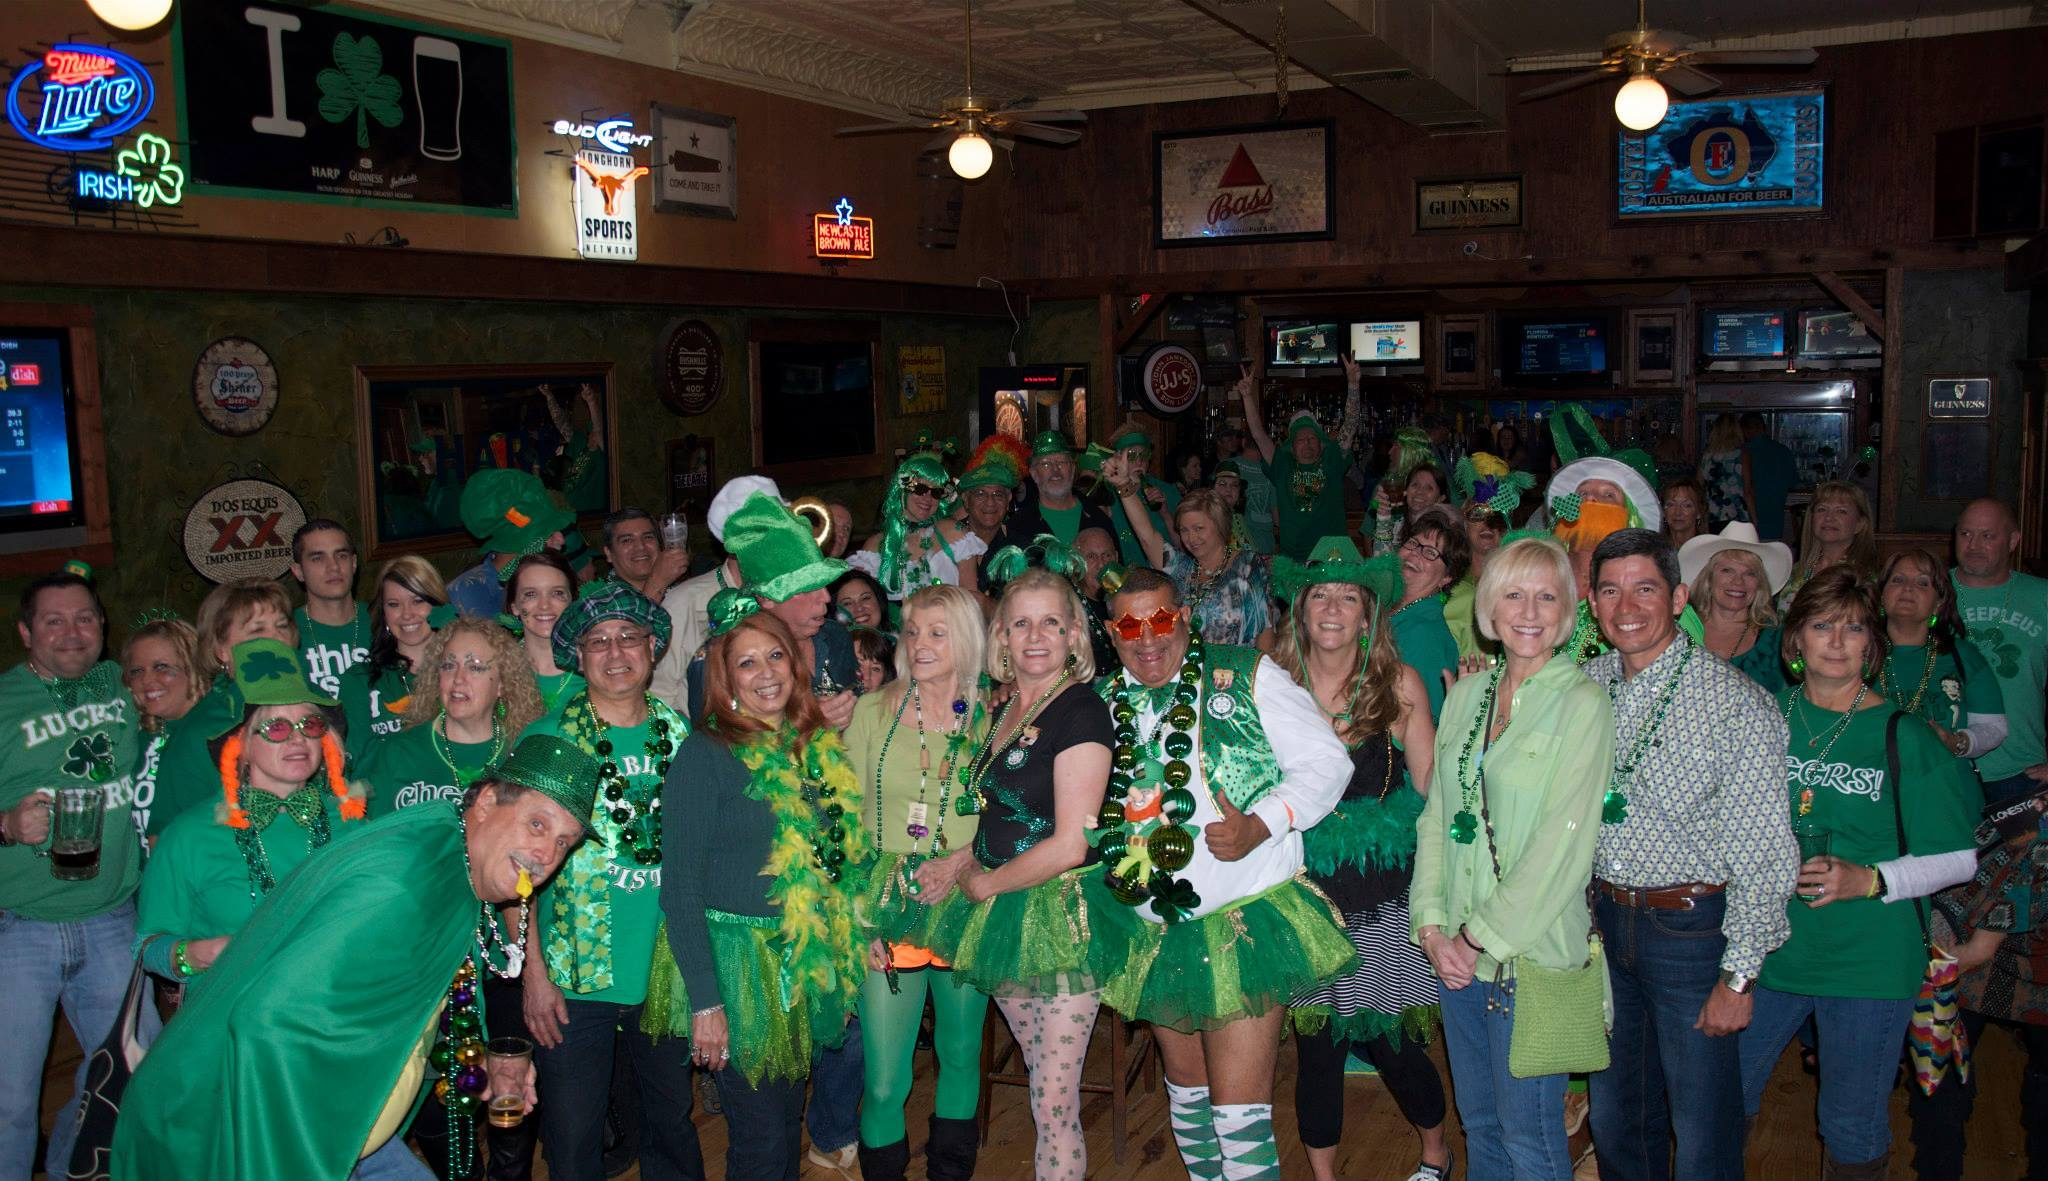 St. Pattys Day\Pub Crawl 2015